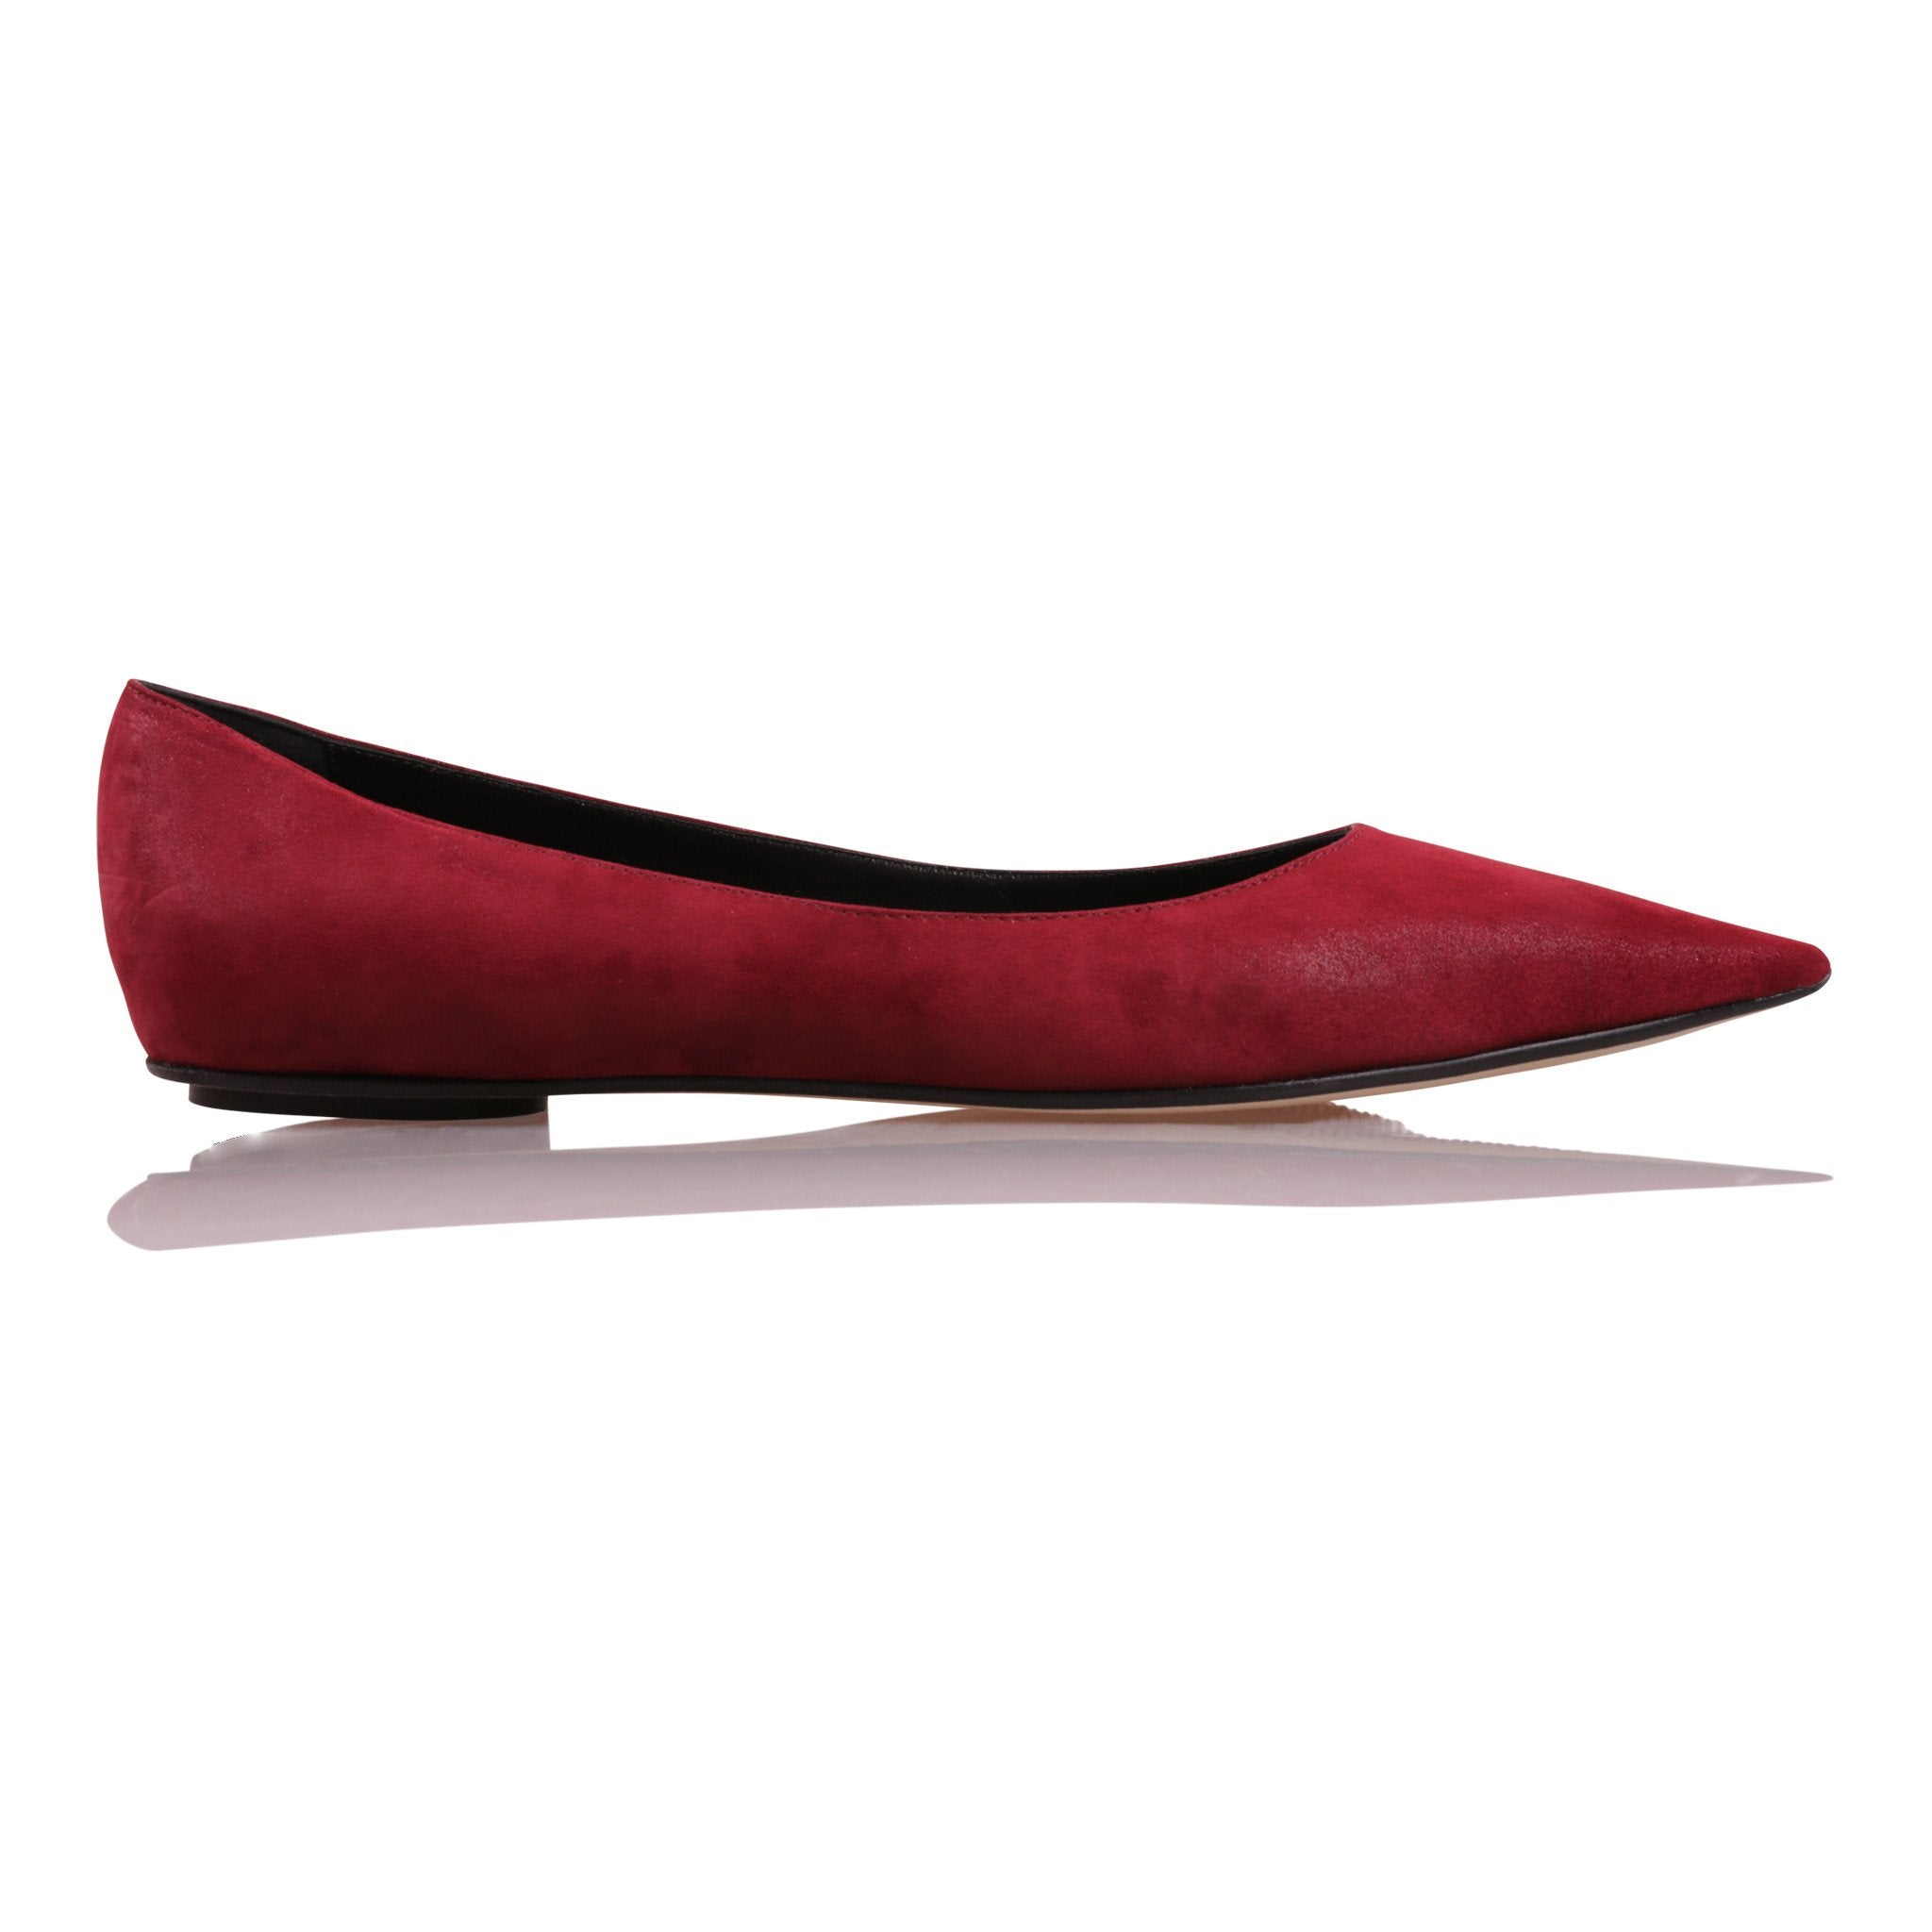 COMO - Hydra Bordeaux + Nero Insole, VIAJIYU - Women's Hand Made Sustainable Luxury Shoes. Made in Italy. Made to Order.